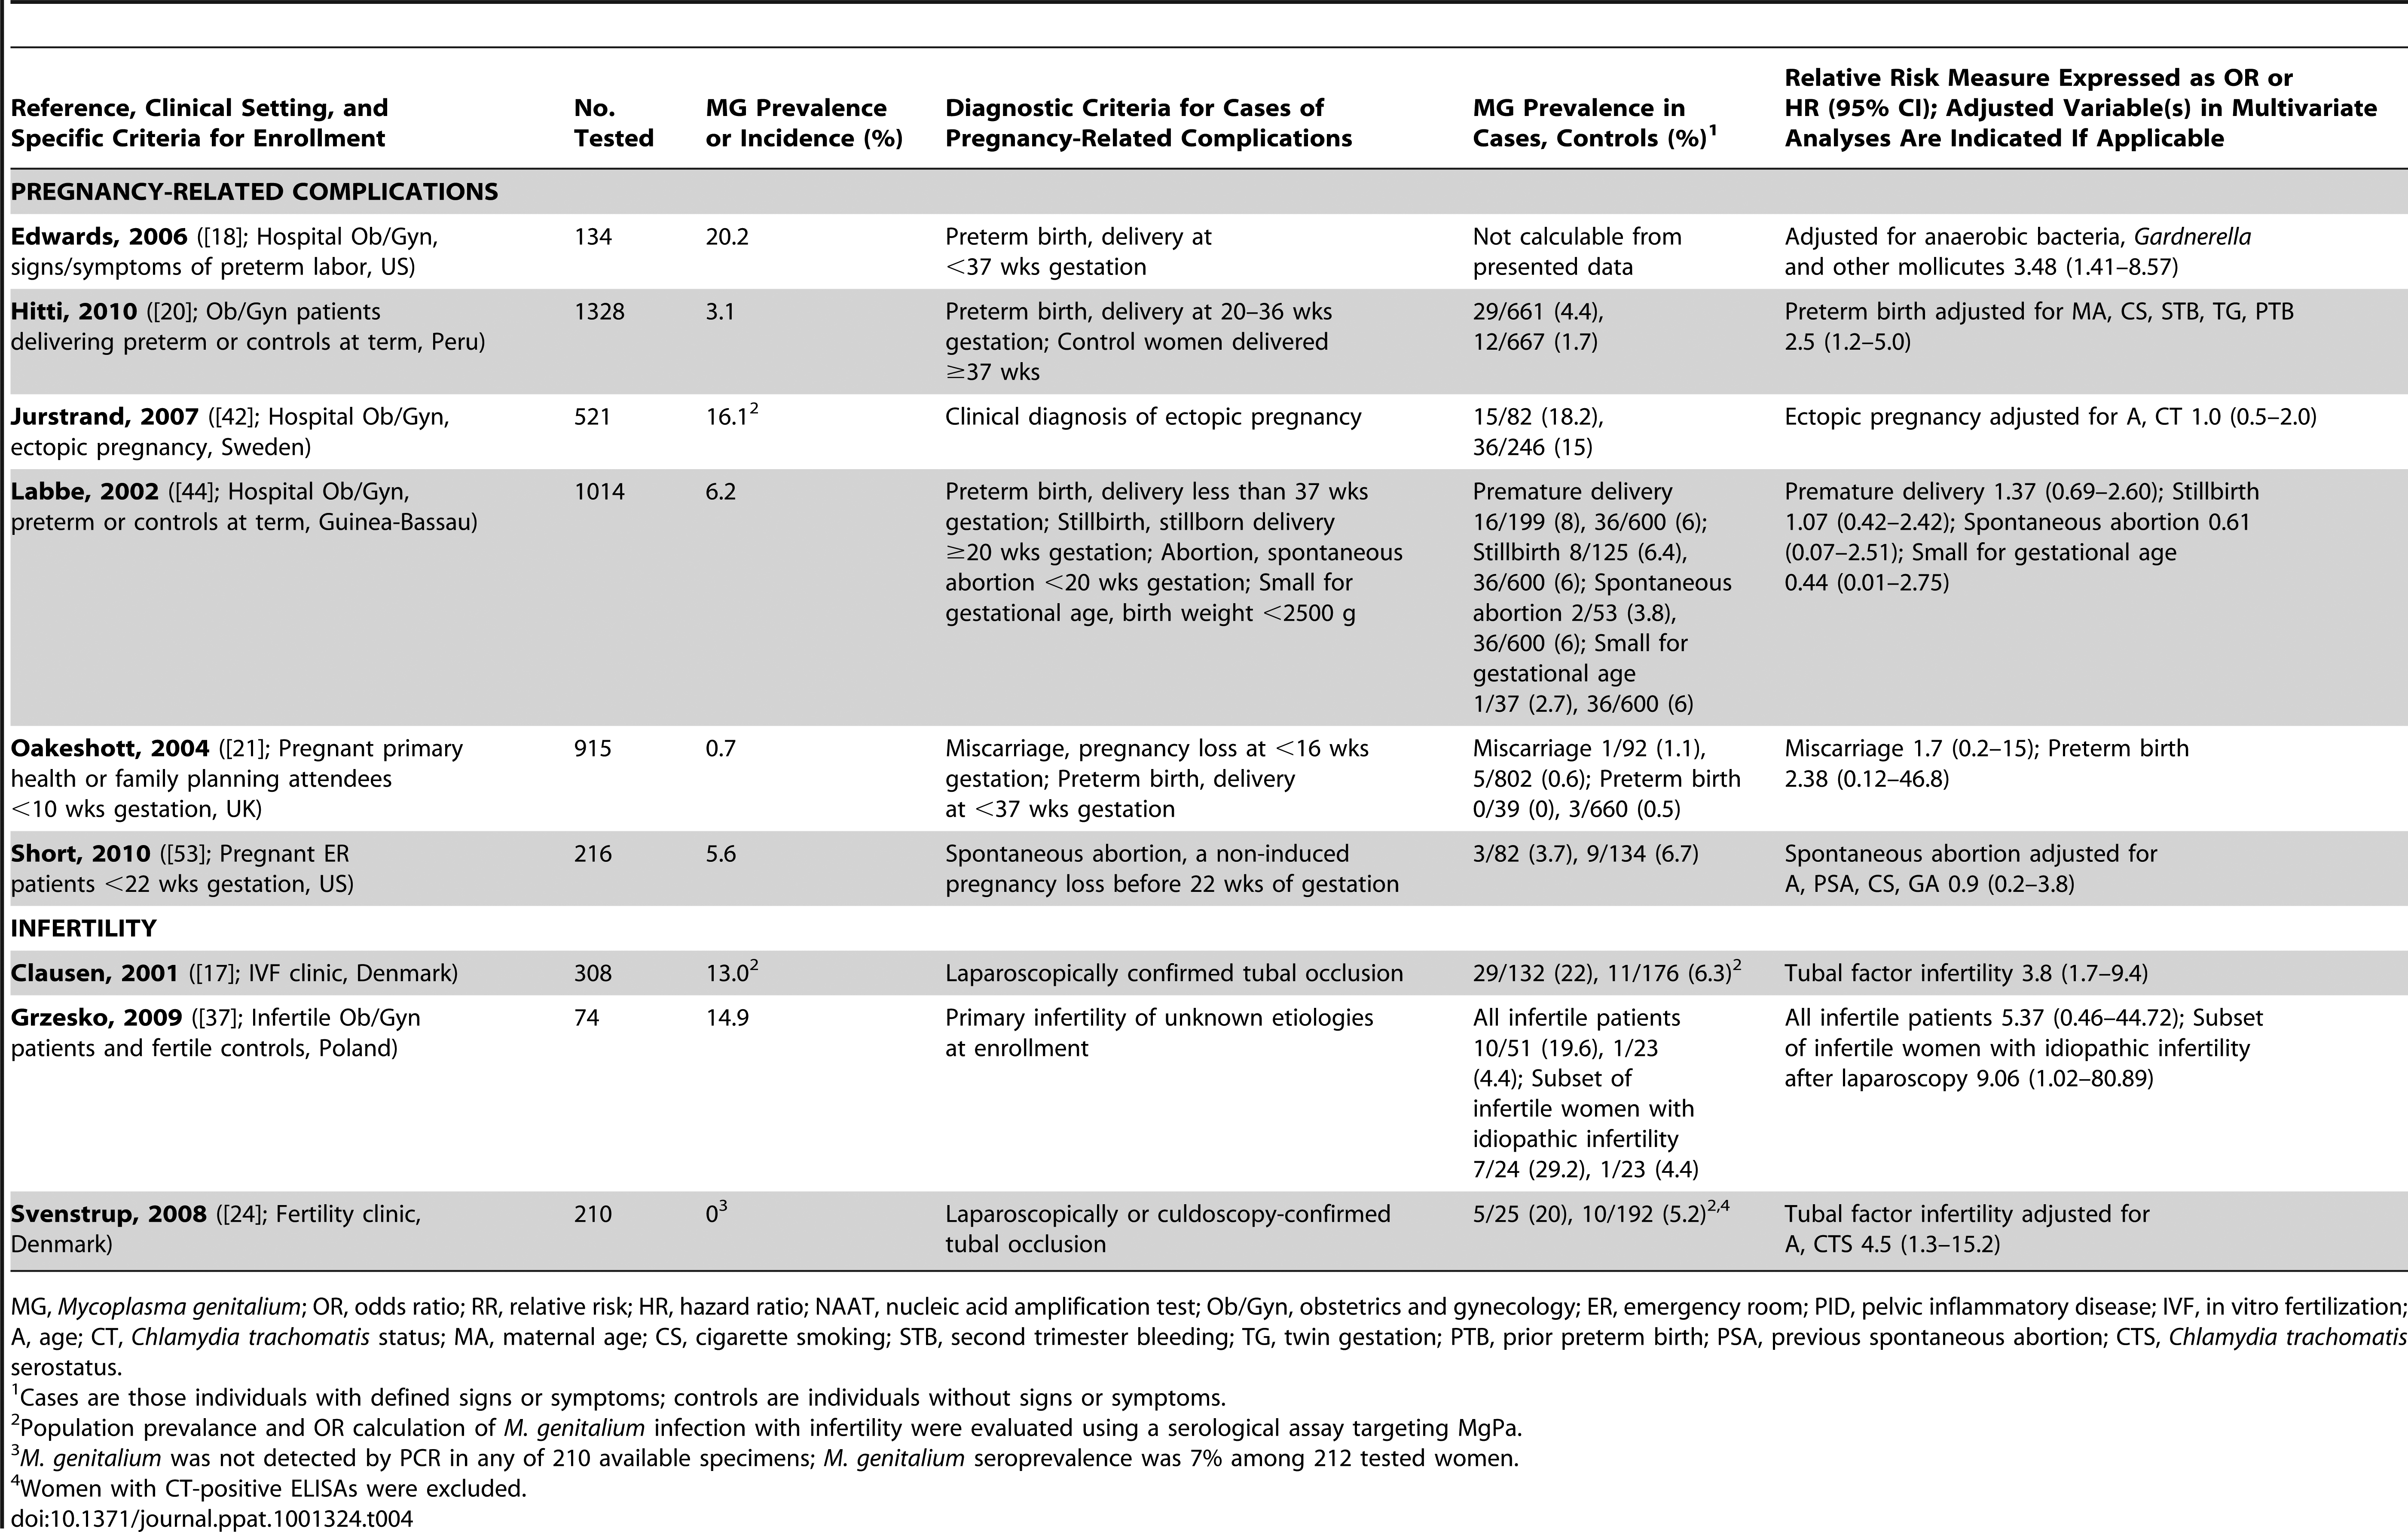 Characteristics of published studies evaluating the associations of <i>M. genitalium</i> with pregnancy-related complications or infertility.